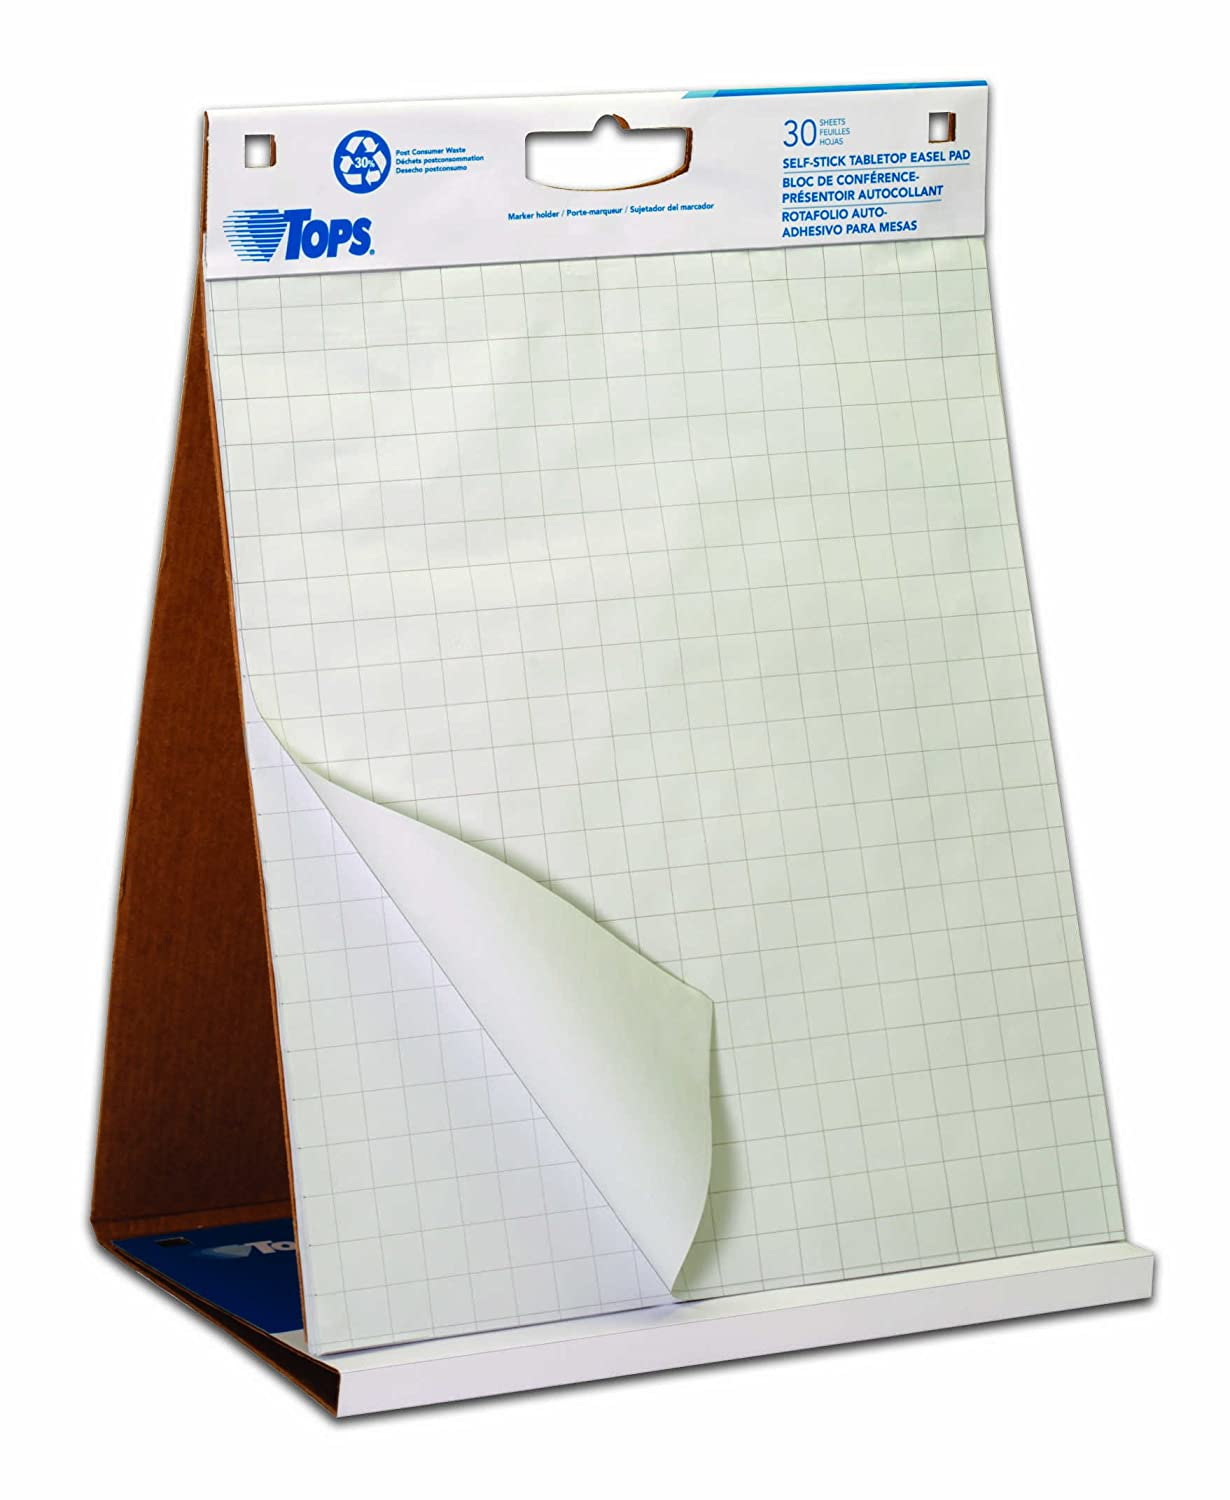 Amazon.com : TOPS Easel Pad with Tabletop Easel, 30 Self Stick Sheets, White, 22 x 23 Inches (79250) : Office Products